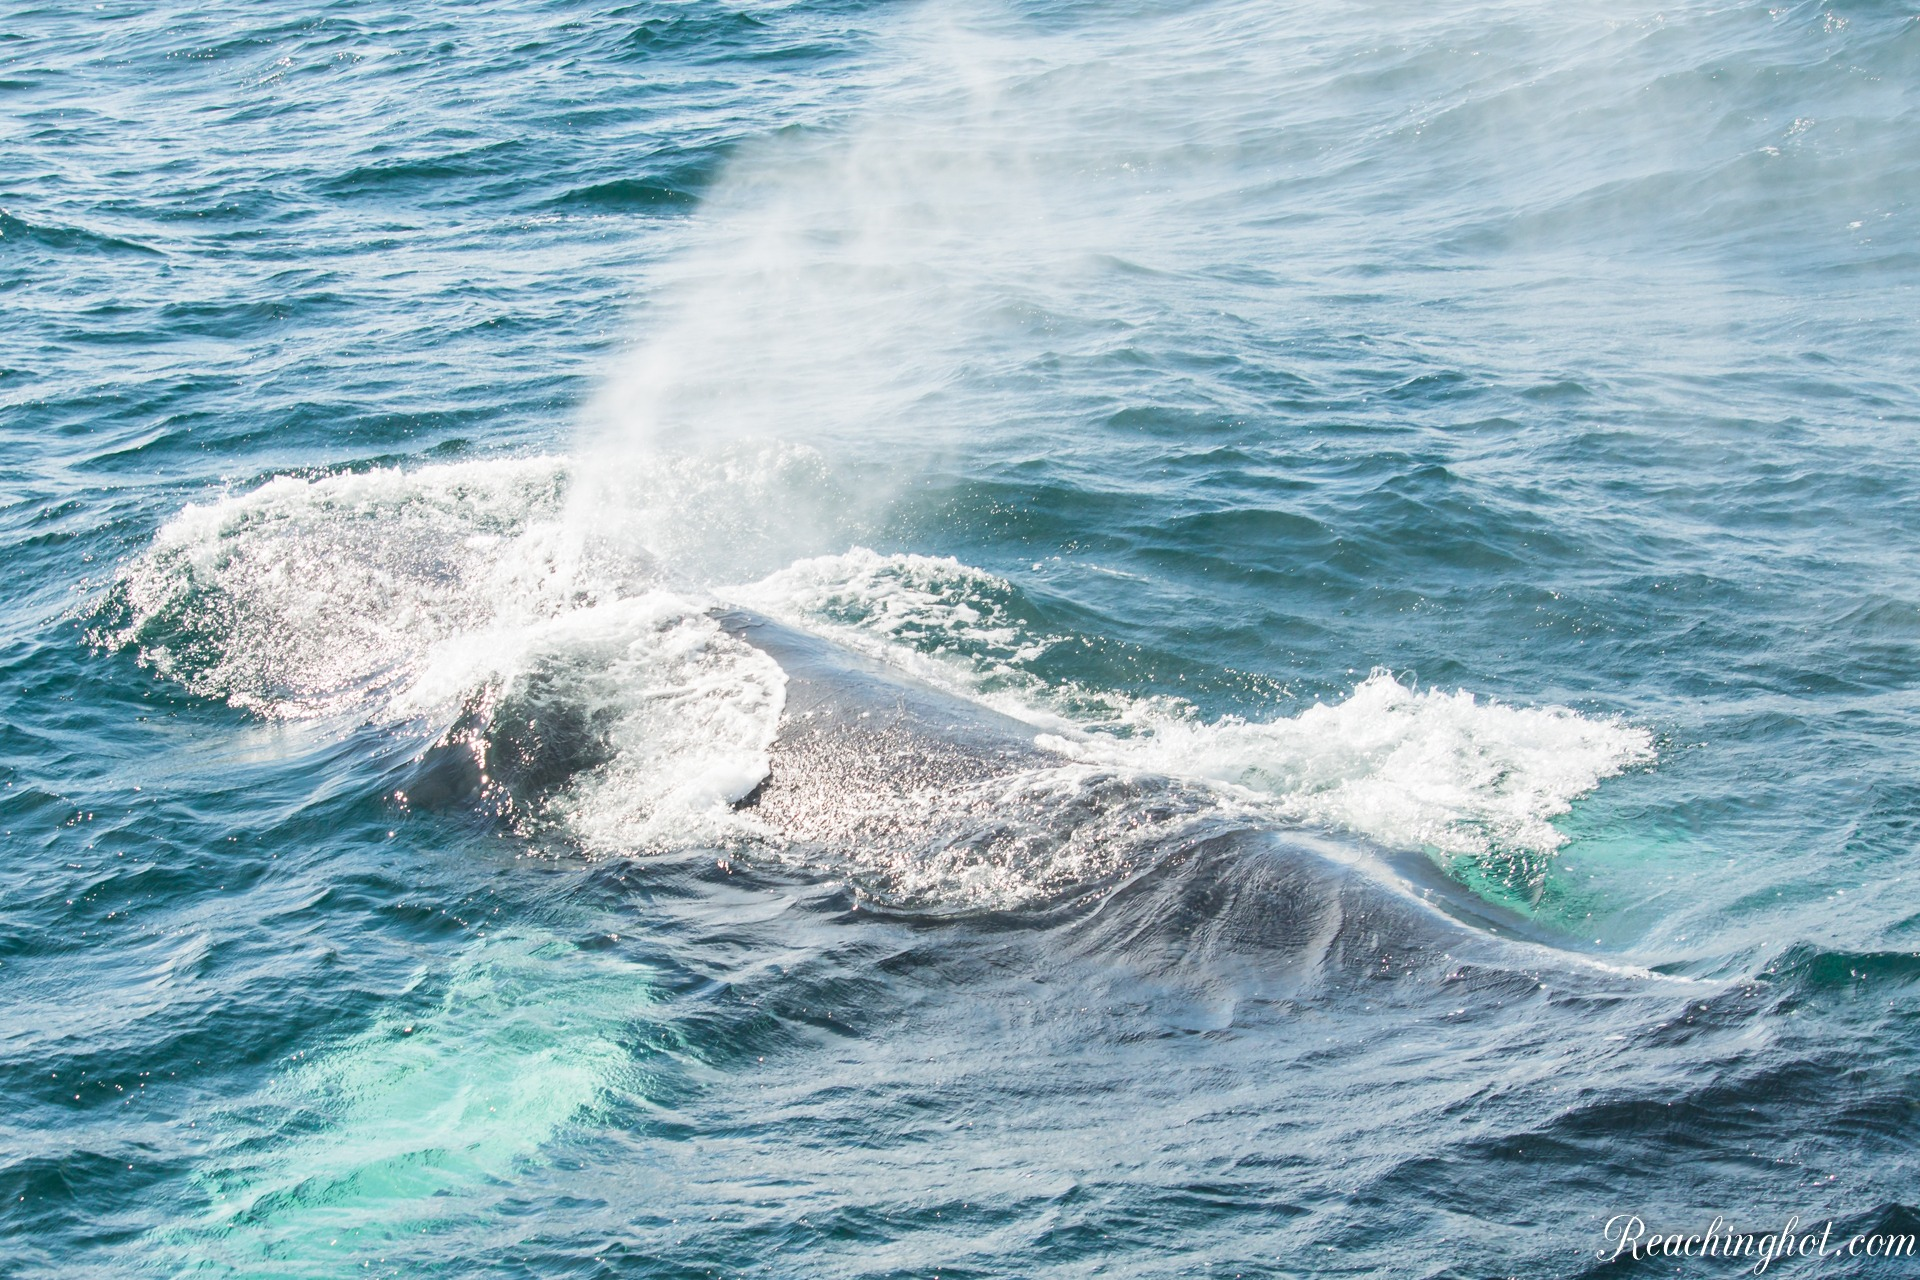 Reachinghot travelblogger at whale watching tour in Samaná in Dominican Republic